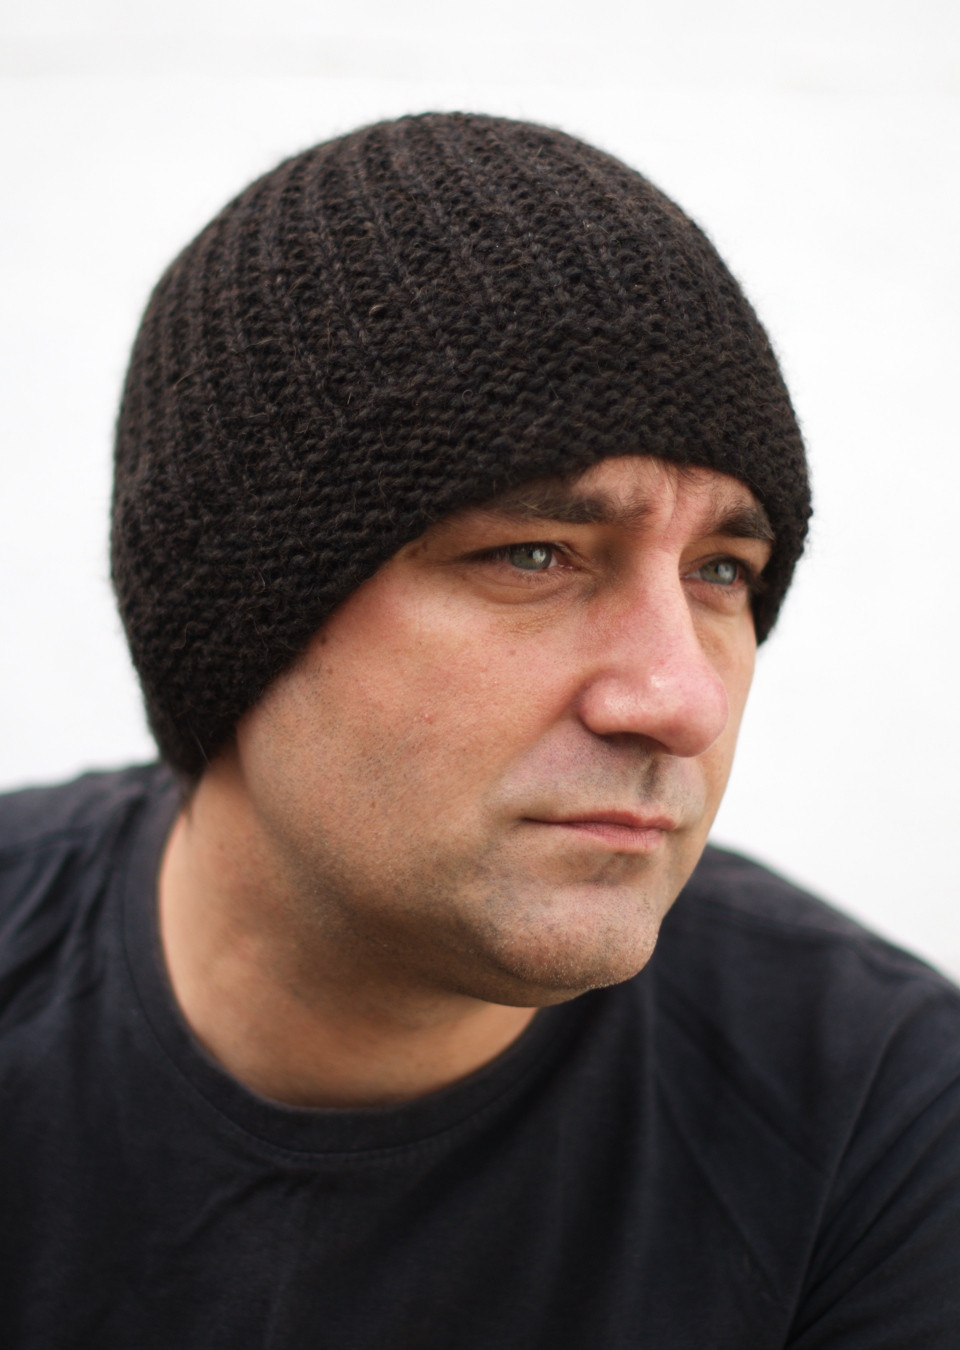 Mens Knit Hat Pattern Lovely Hats and Gloves the Little Knitting Pany Wel E to Of Fresh 43 Photos Mens Knit Hat Pattern